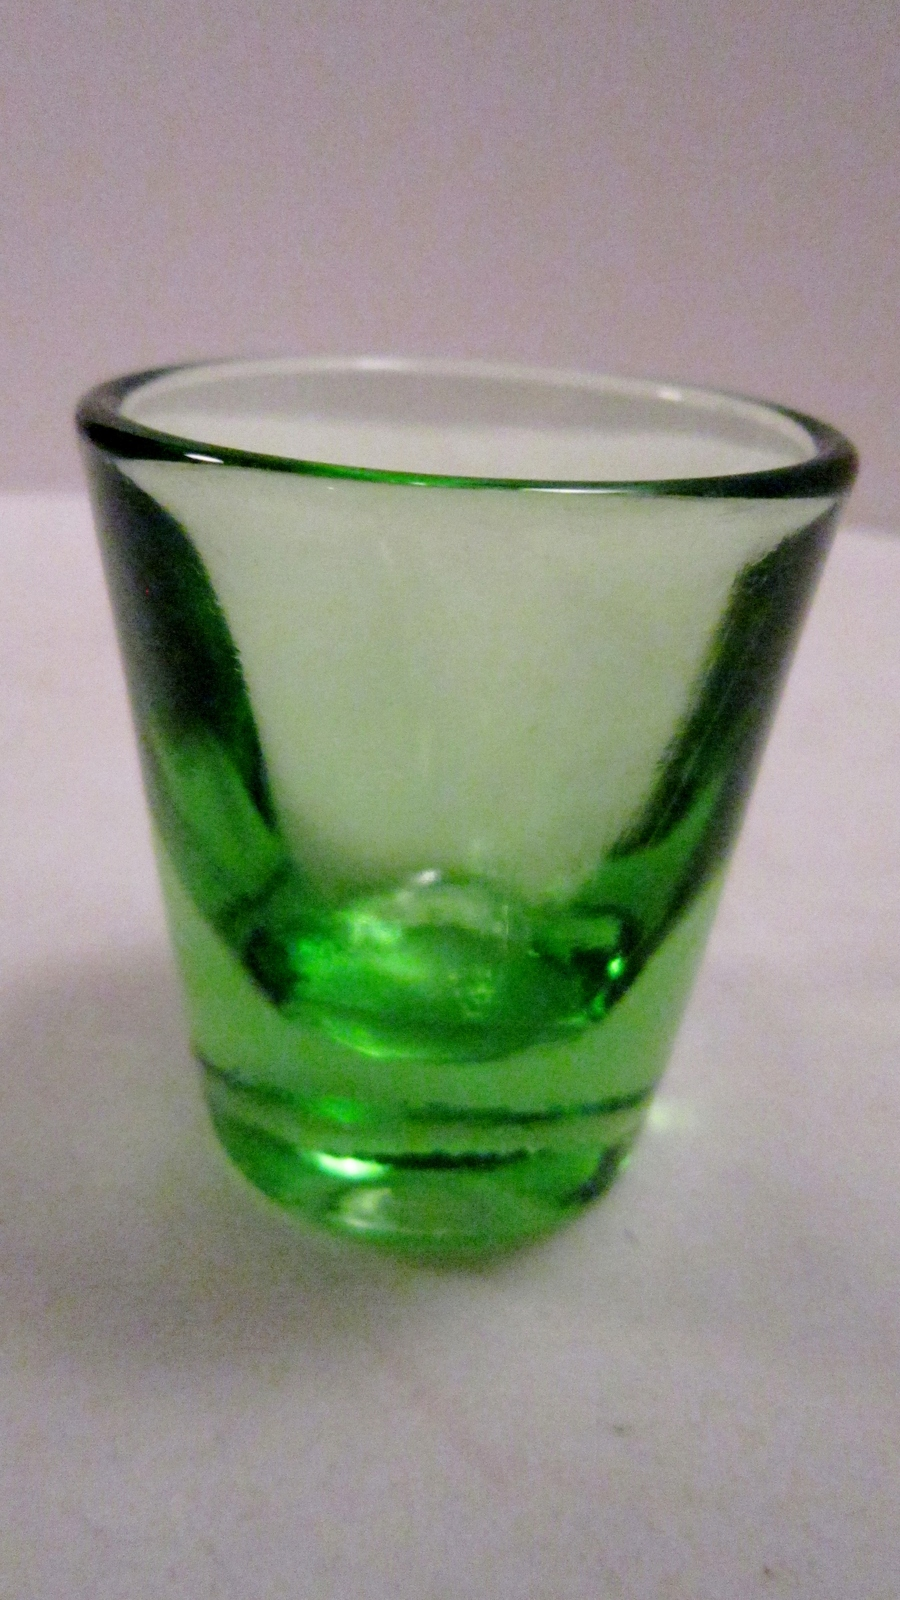 Green shot glass or toothpick holder 01